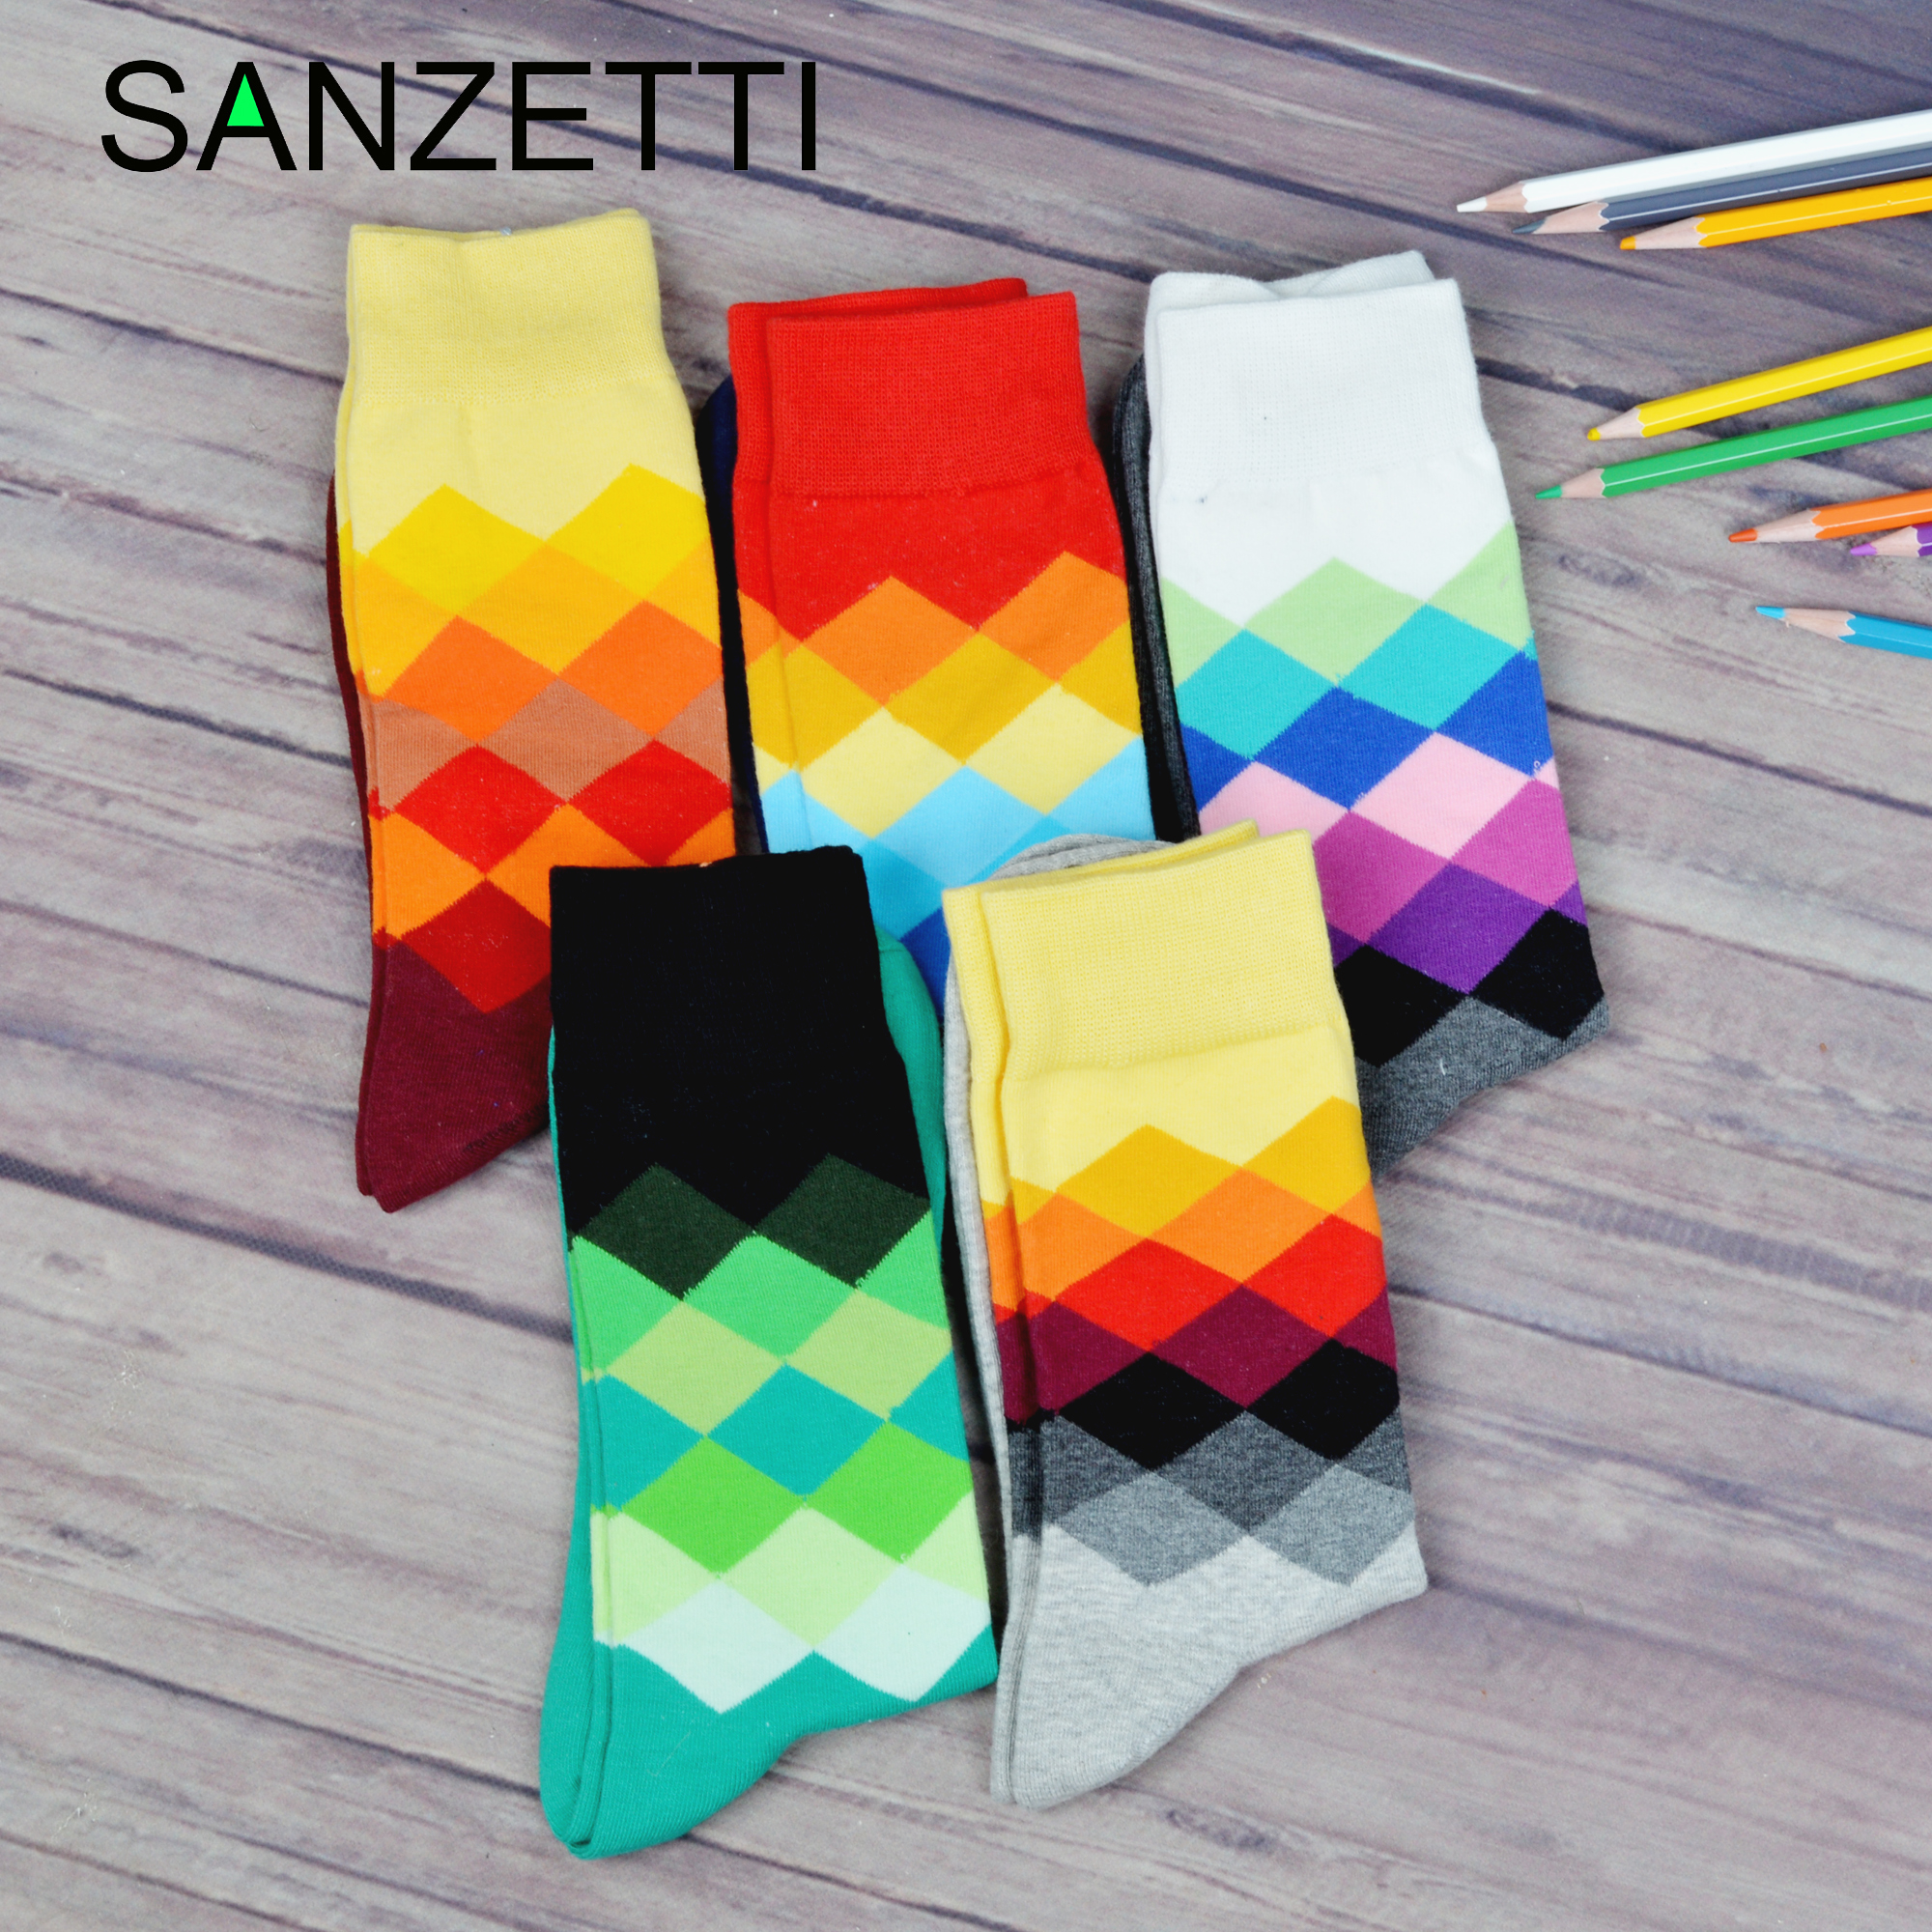 SANZETTI 5 Pairs/Lot Men Casual Colorful Happy Crew Socks Personality Novelty Combed Cotton Socks Dress Breathable Gift Socks